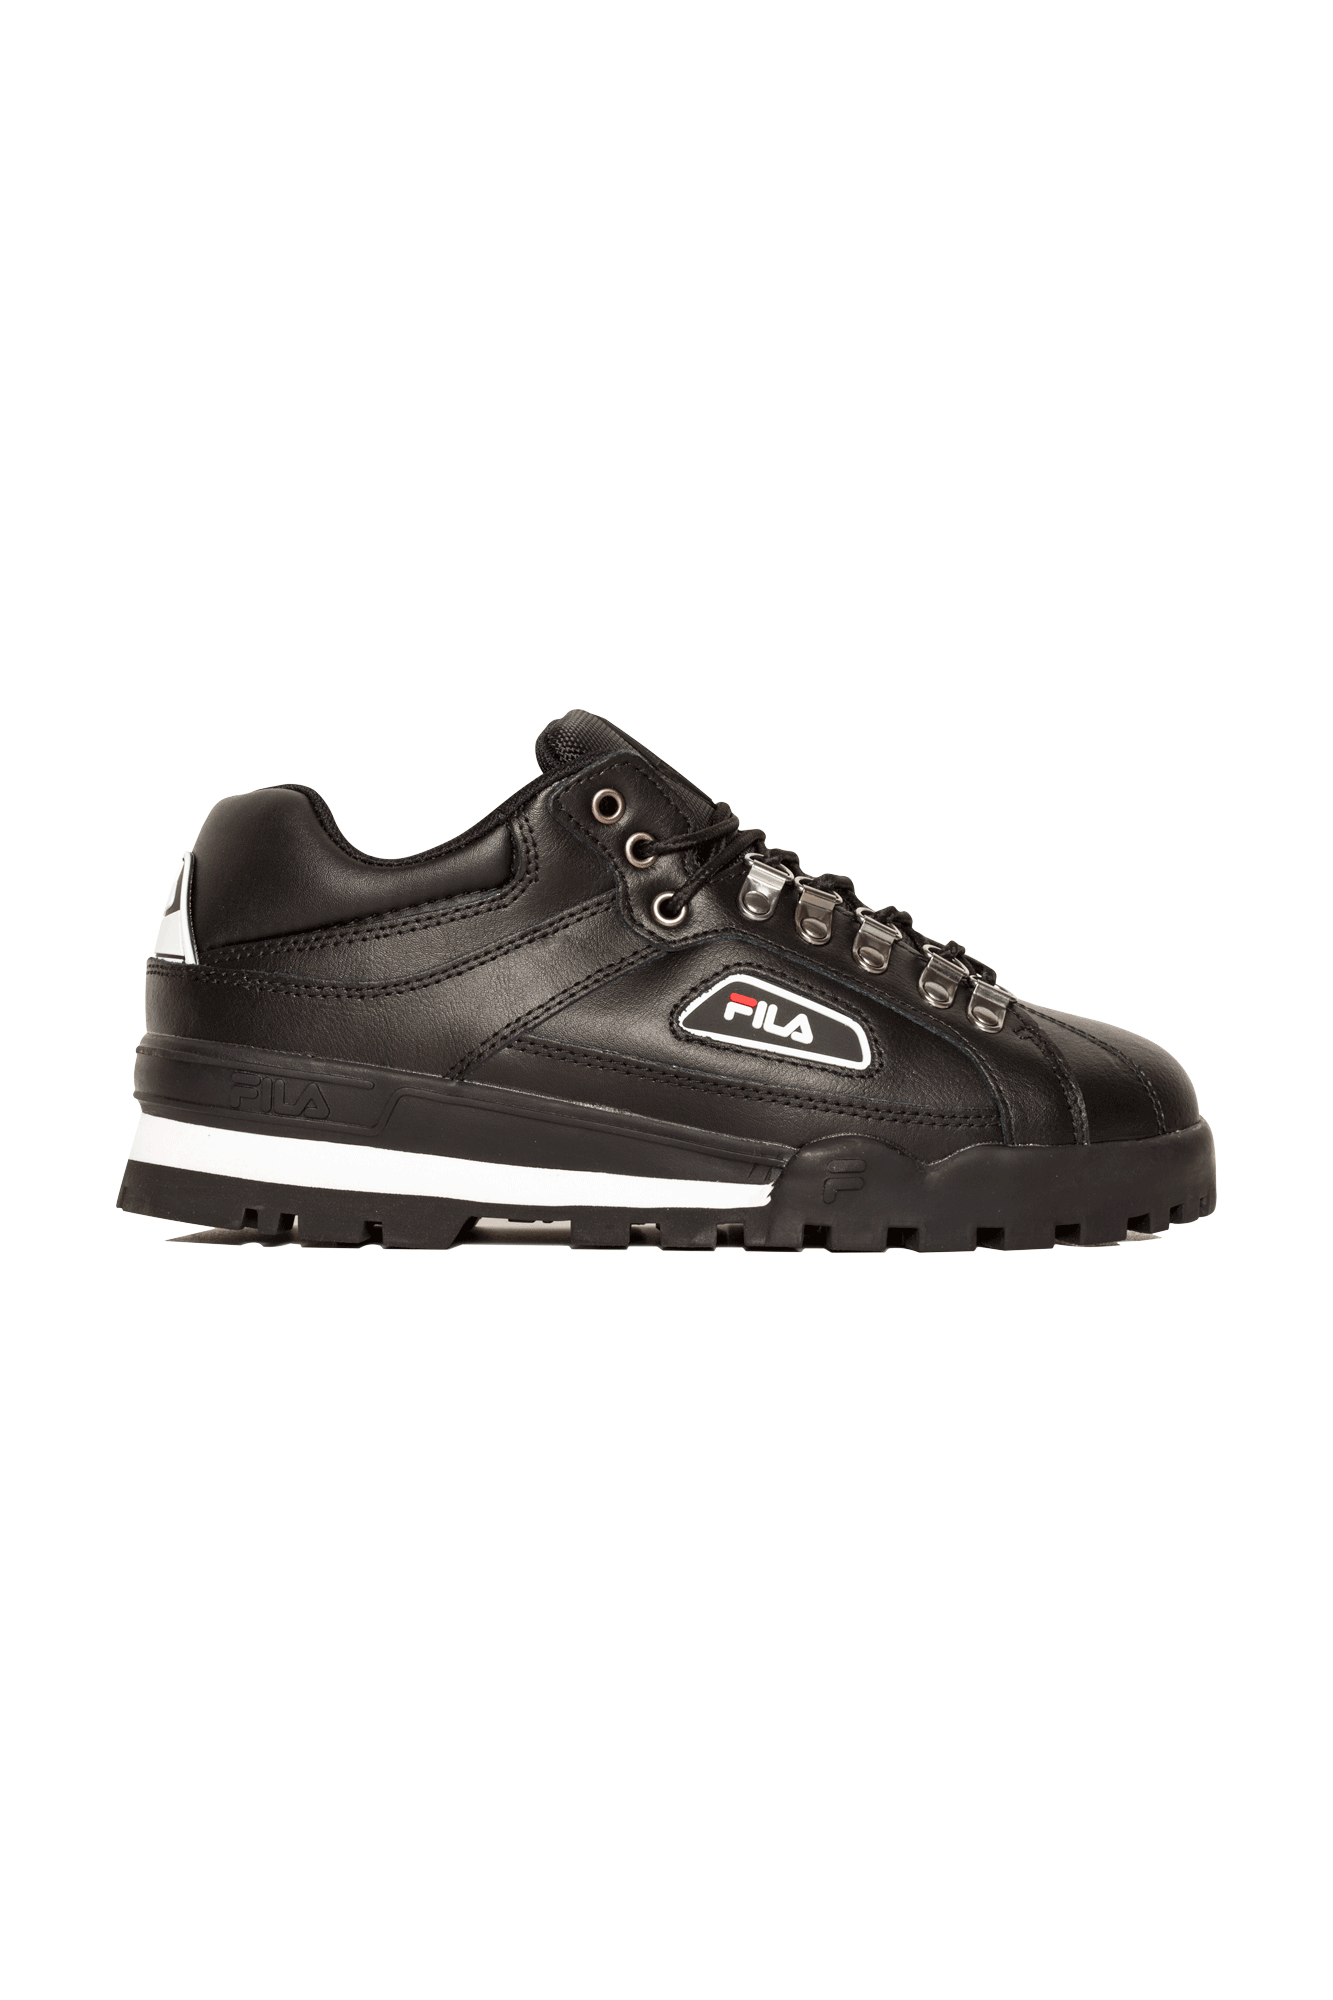 Fila Sneakers Trailblazer L Woman Nero 1010482#000#25Y#4 - One Block Down